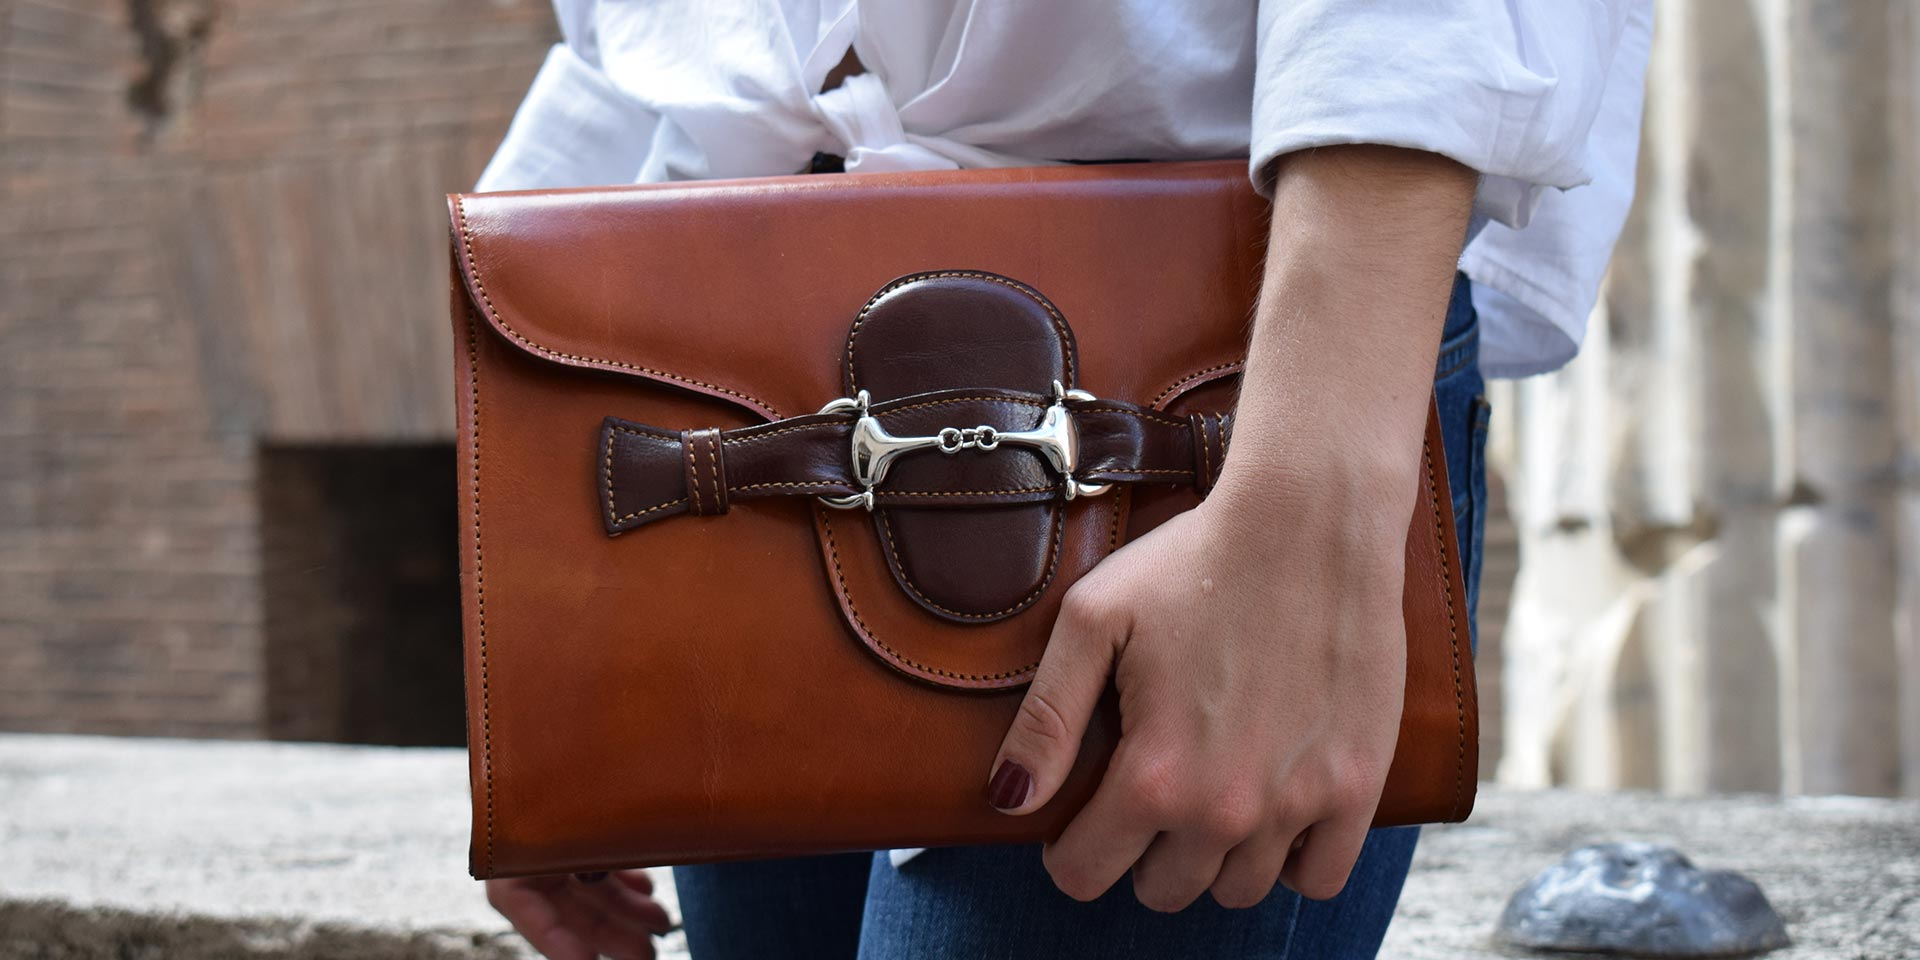 Fama, Italian leather handcrafted purse by Mancini Leather Since 1918